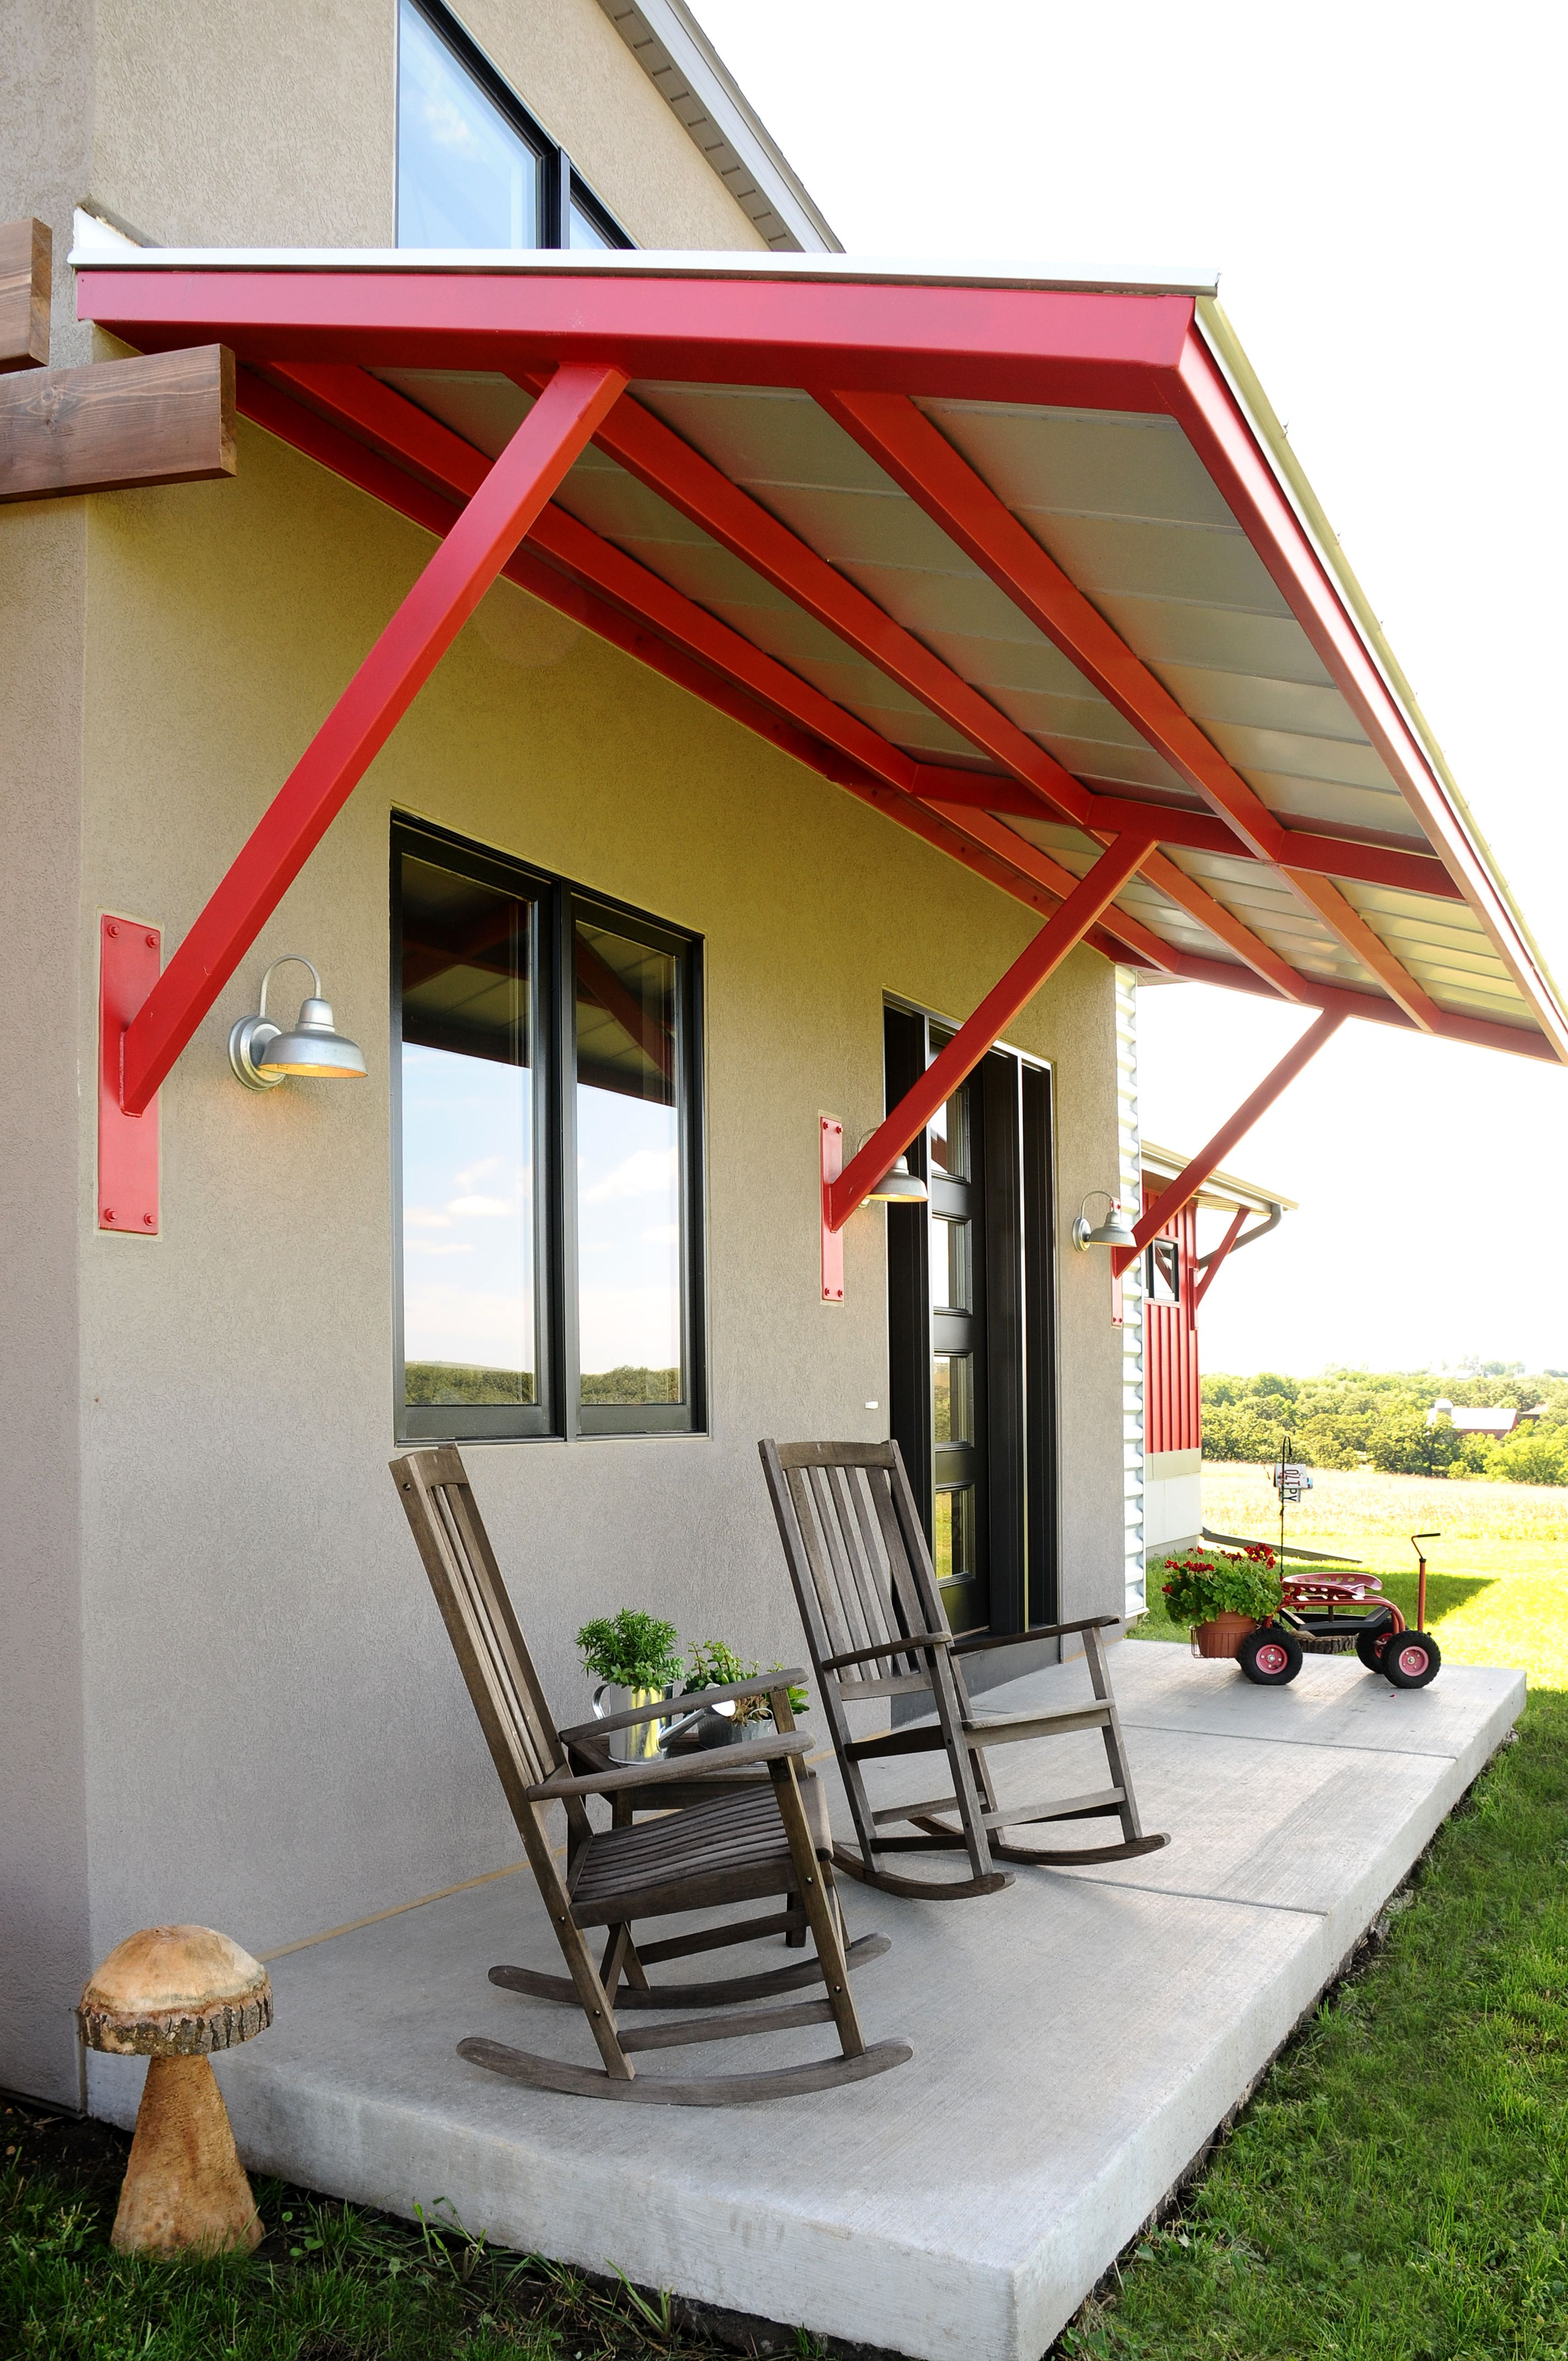 Model Awning Rumah Front Entry With Concrete Slab With Steel Awning And Braces